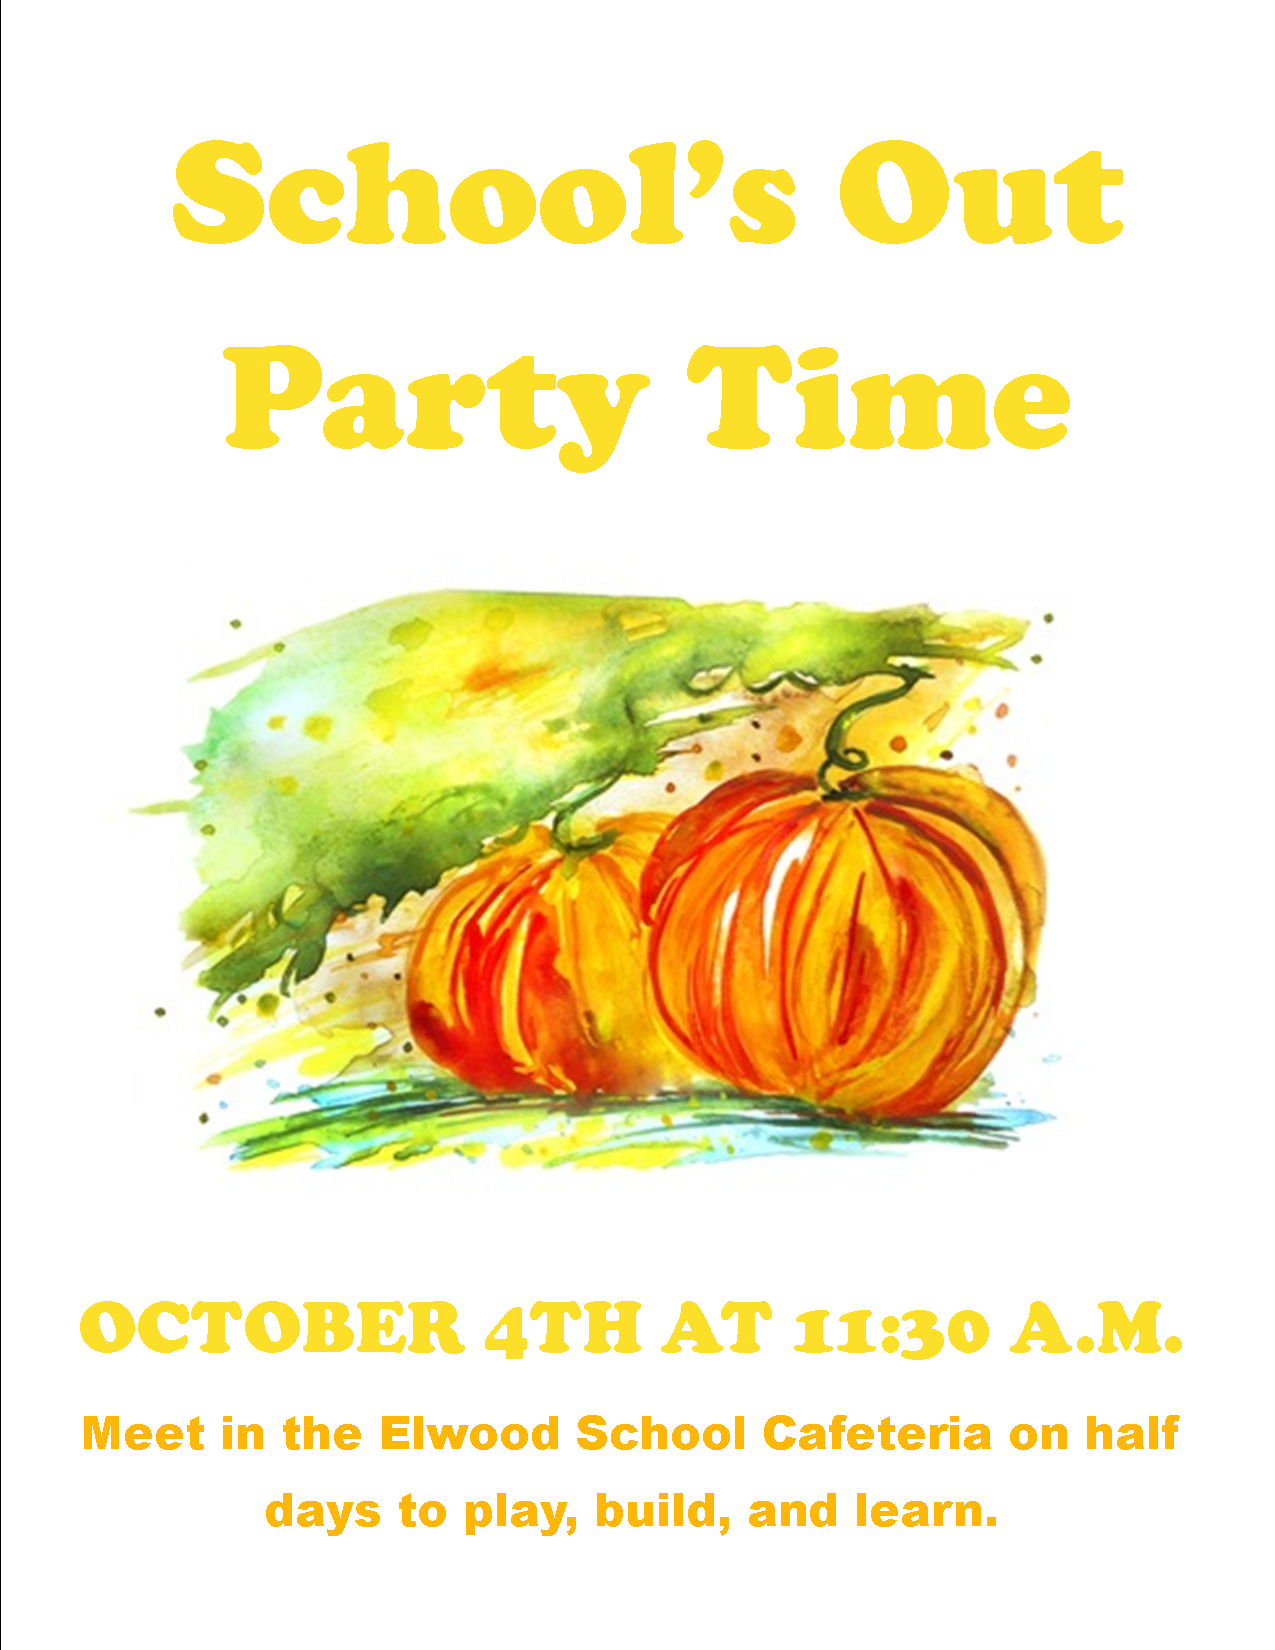 School's Out Party Time: Pumpkin Science